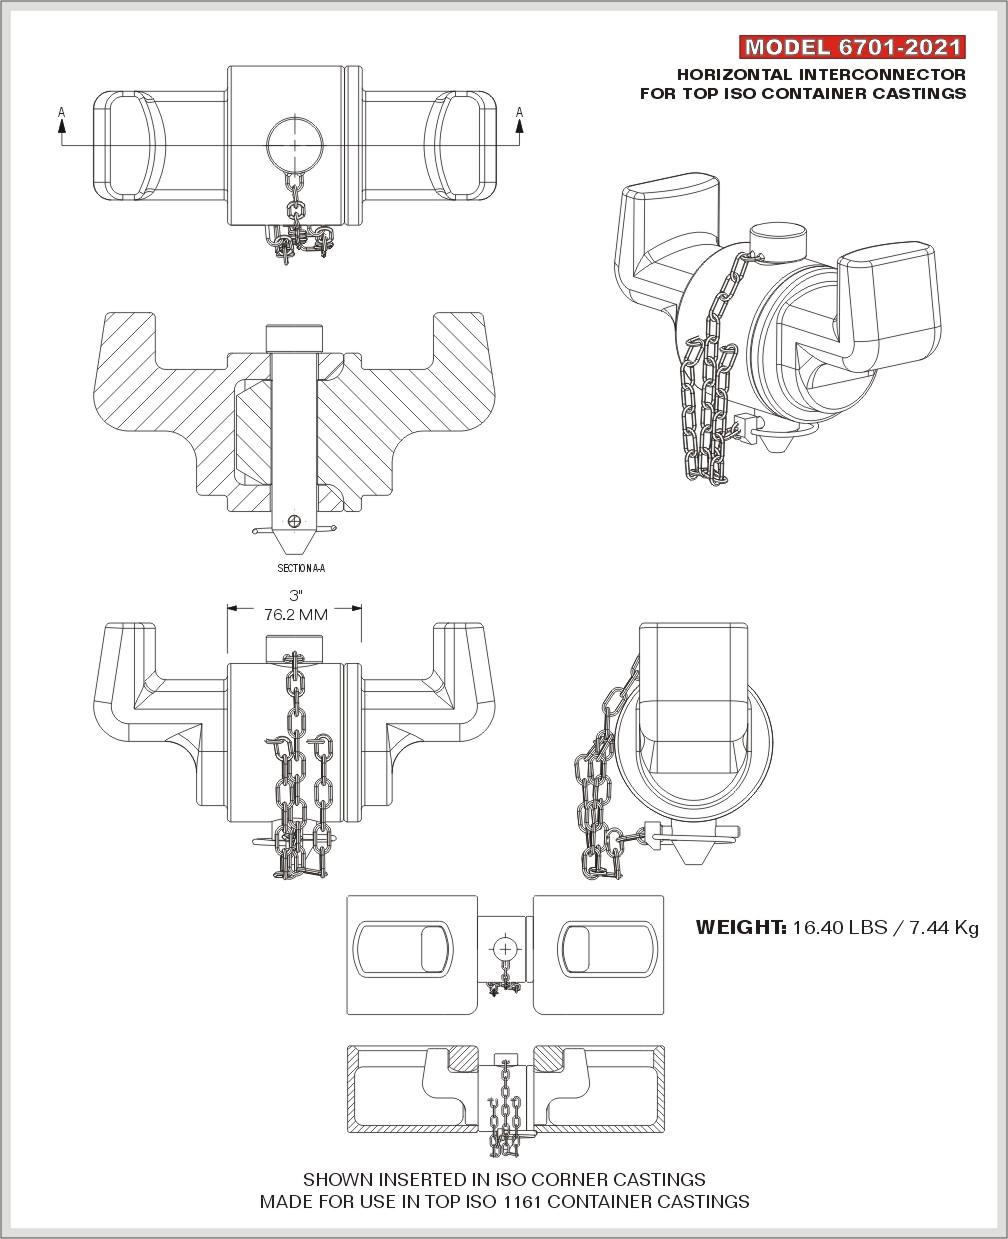 Shipping Container Cad Drawings   Joy Studio Design Gallery - Best ...